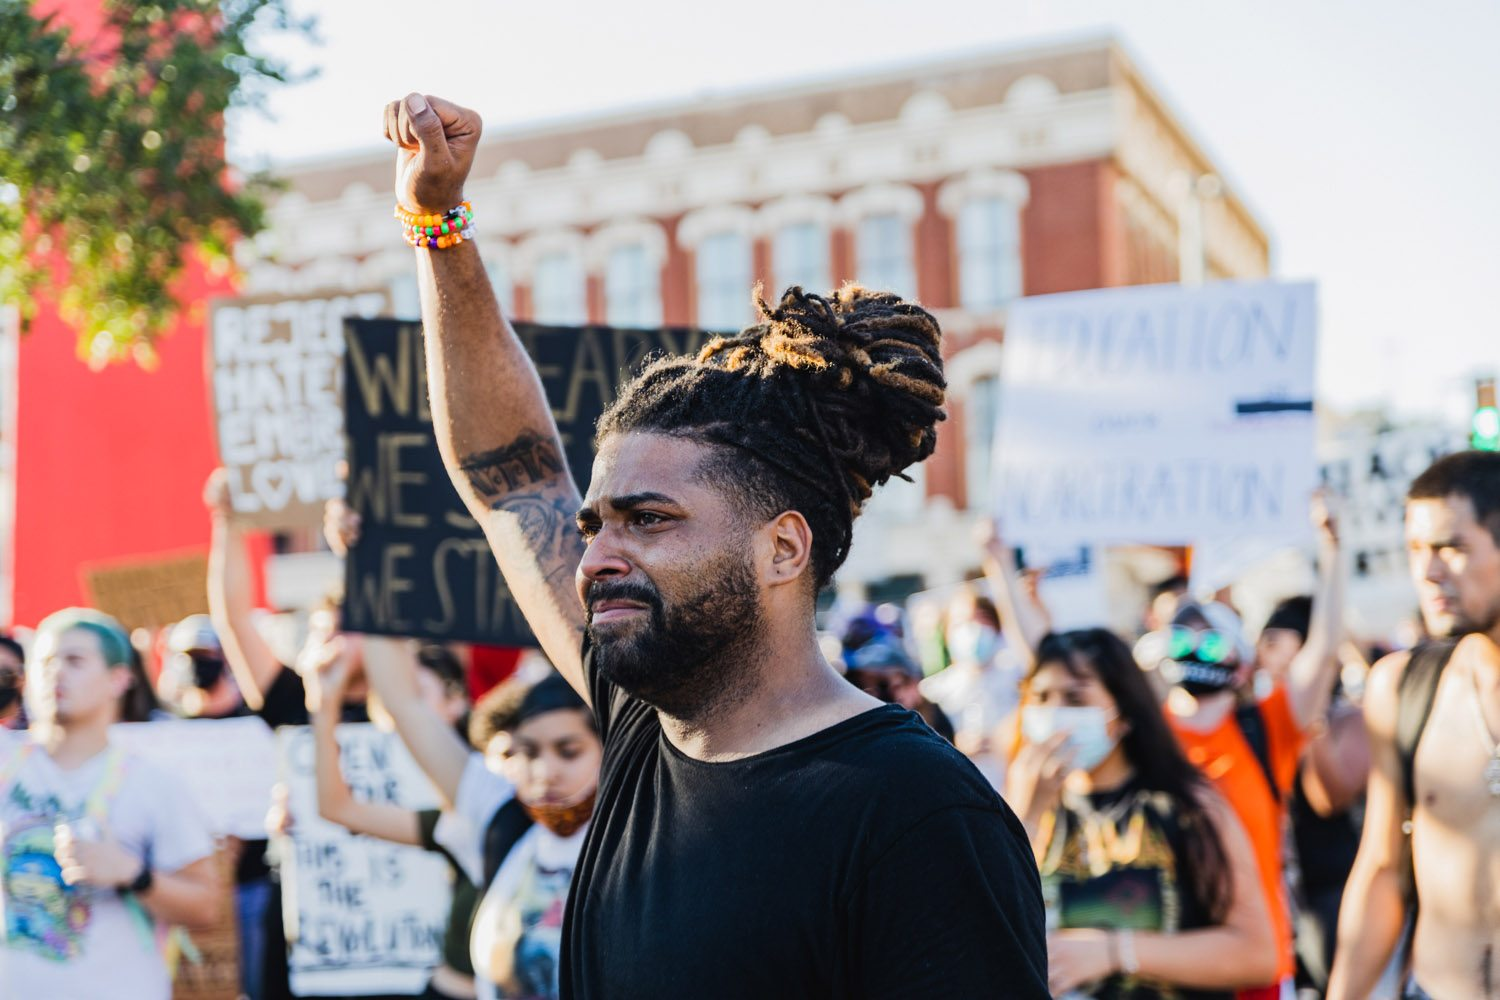 Organizer Antonio Lee gestures to the crowd during a Black Lives Matter protest at the Torch of Friendship on Monday, June 8, 2020. <b><em>Photo by Isaiah Alonzo | Heron contributor</em></b>